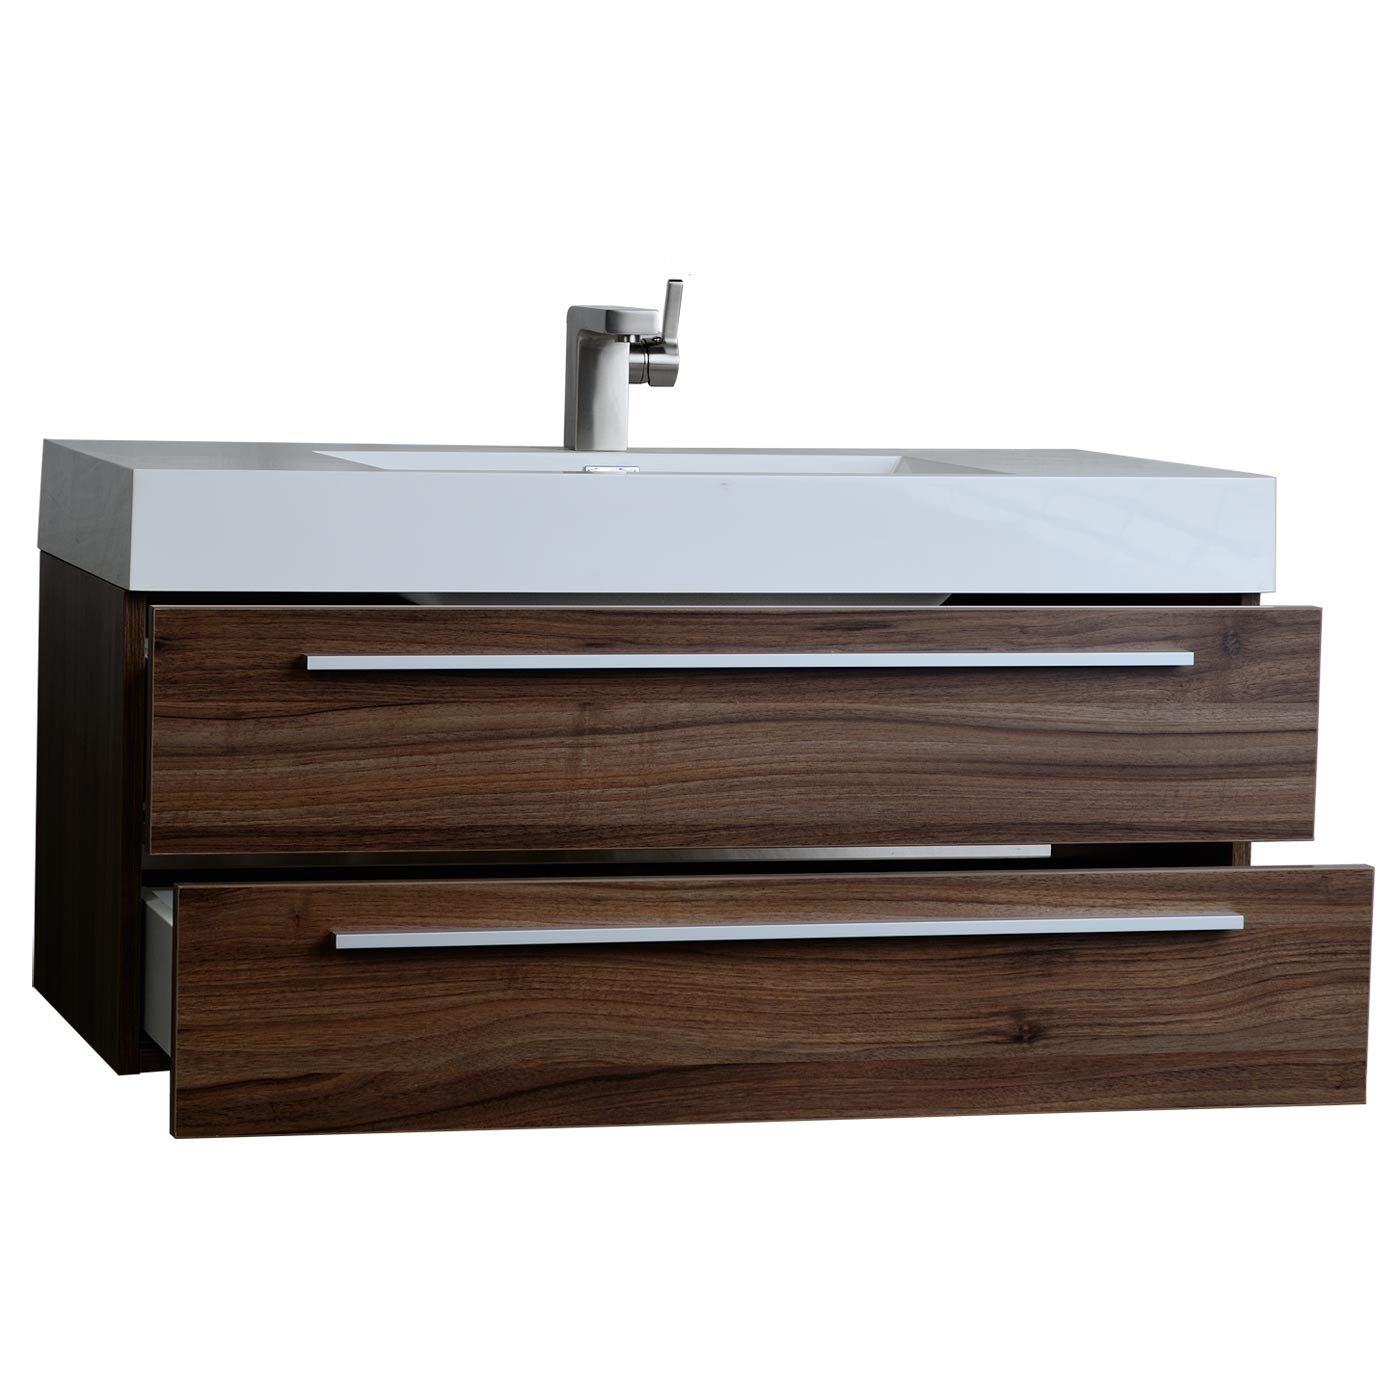 Buy Inch Contemporary Bathroom Vanity Walnut Tn